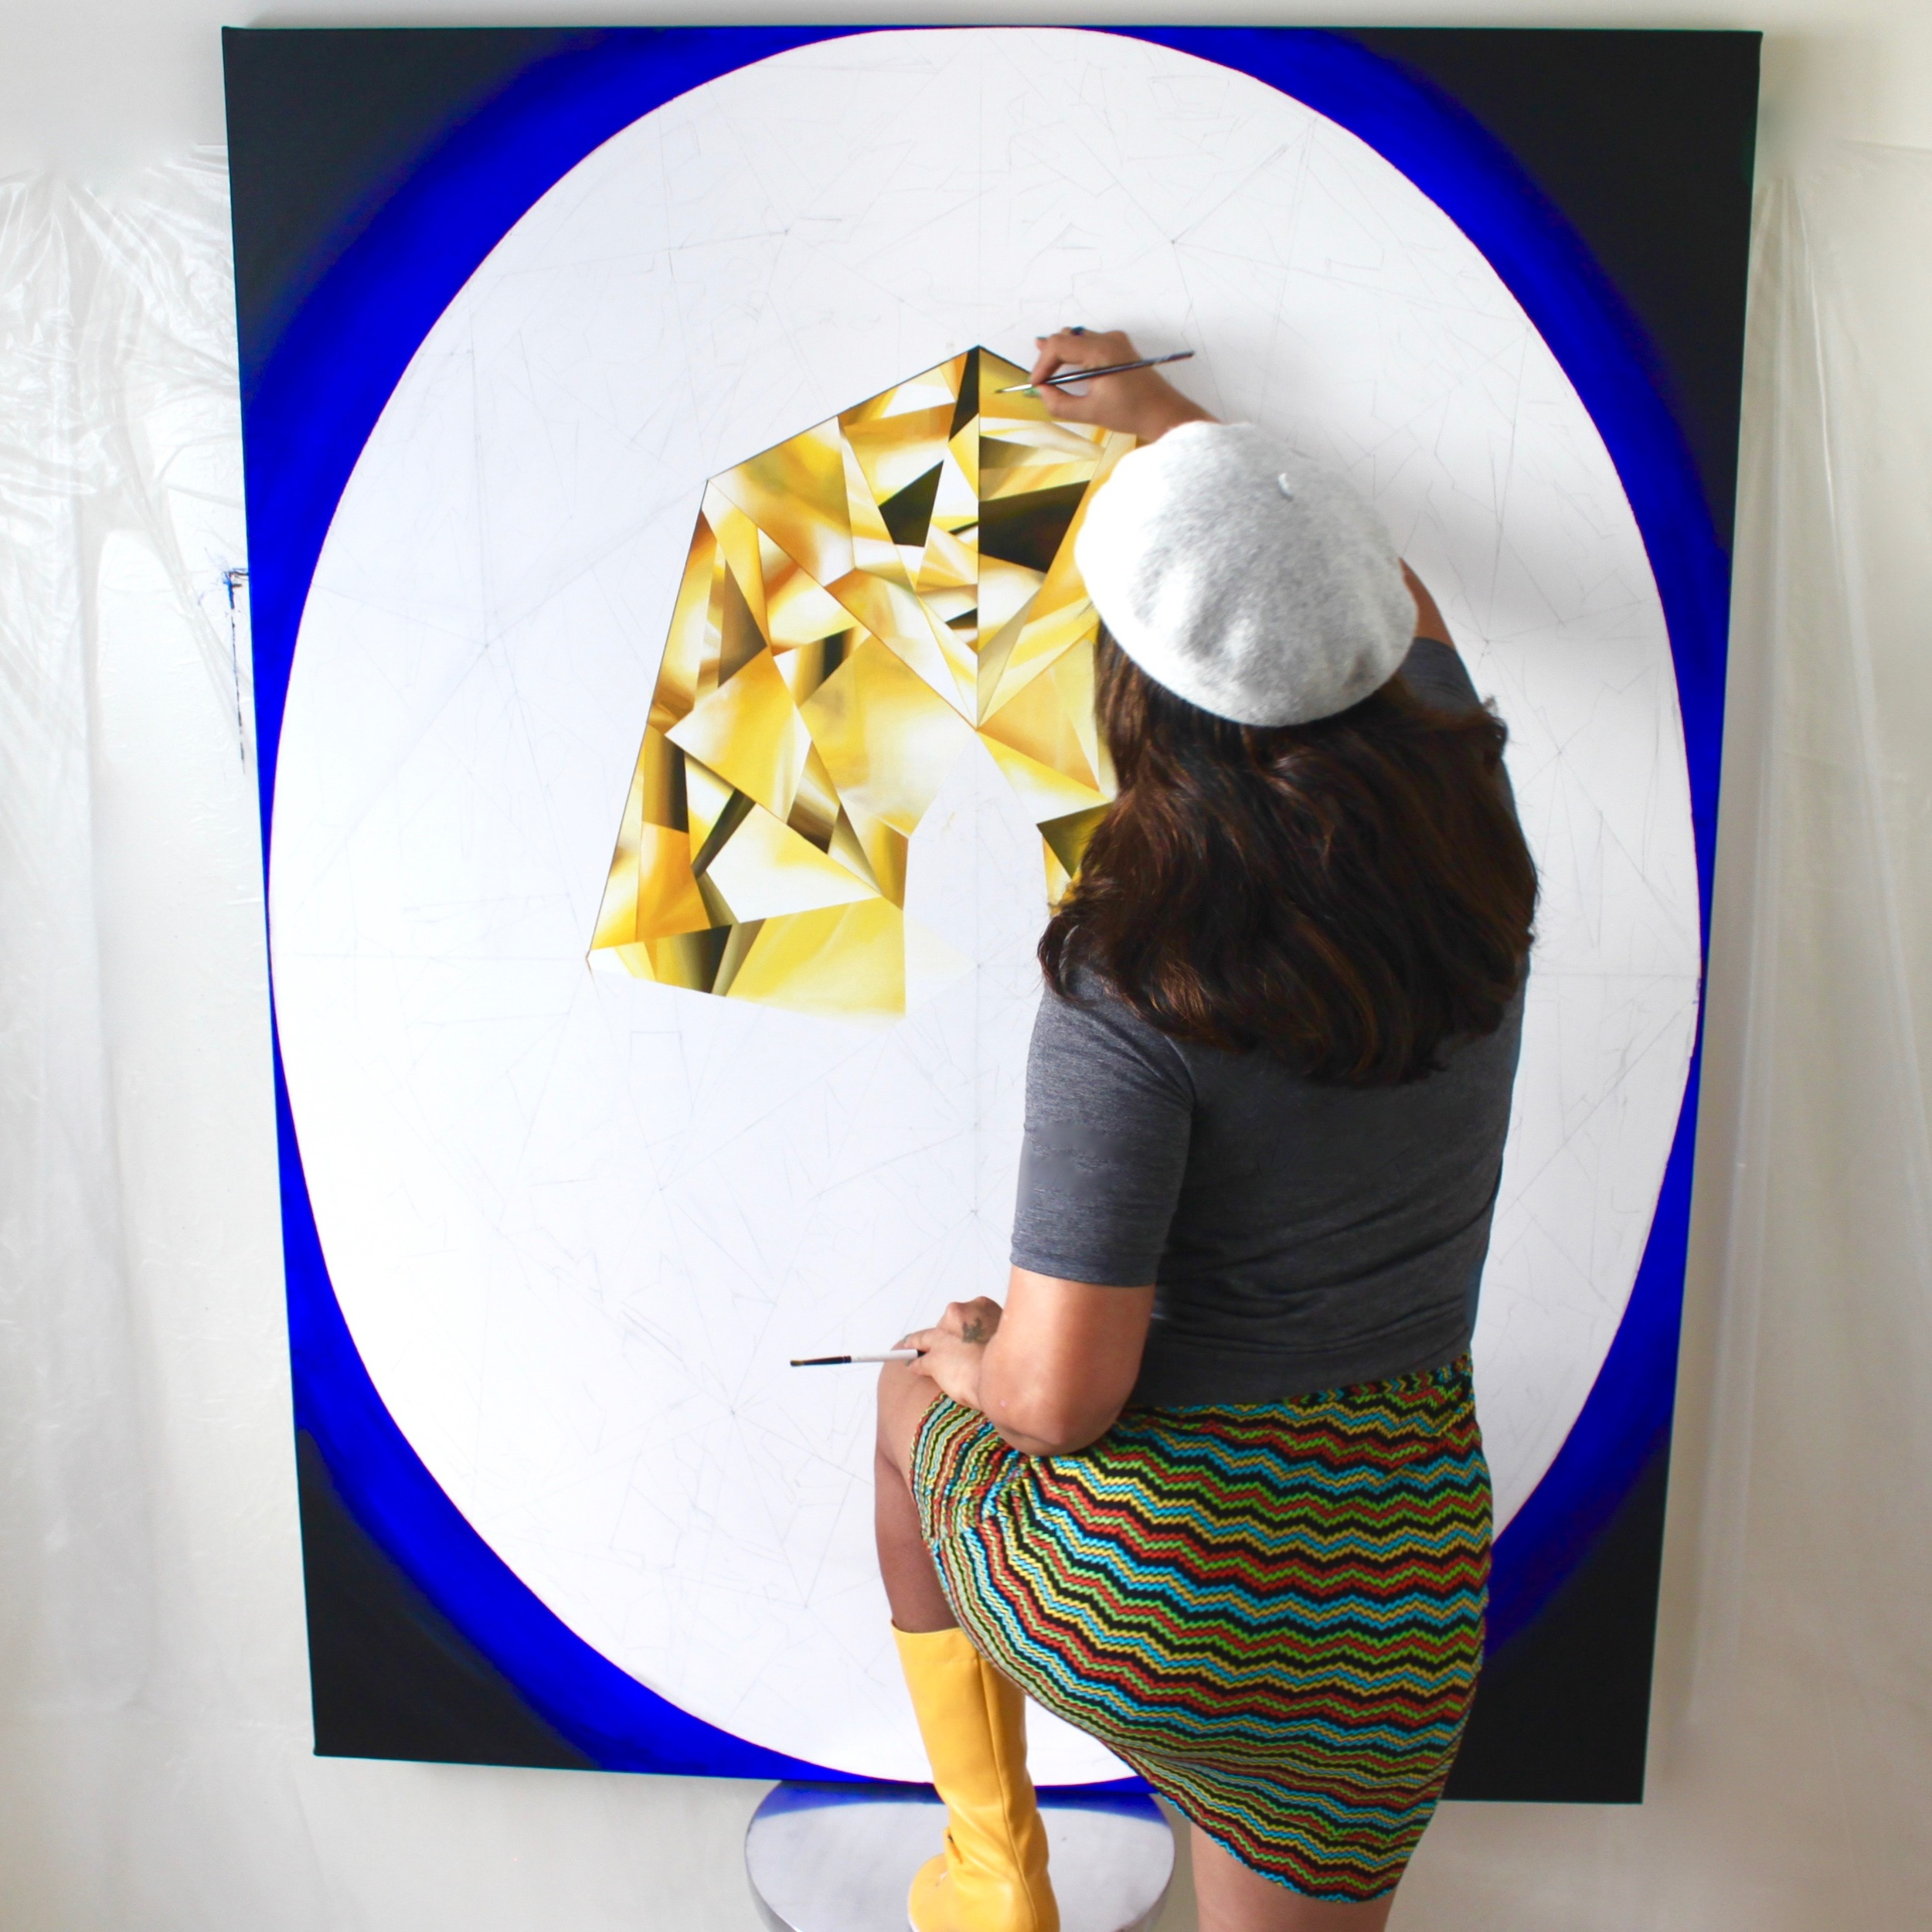 Had to pull out my yellow boots for this! Making of 'The Portrait of Luminosity' - Portrait of an Oval Cut Yellow Diamond. 60 x 48 inches. Acrylic on Canvas. ©Reena Ahluwalia